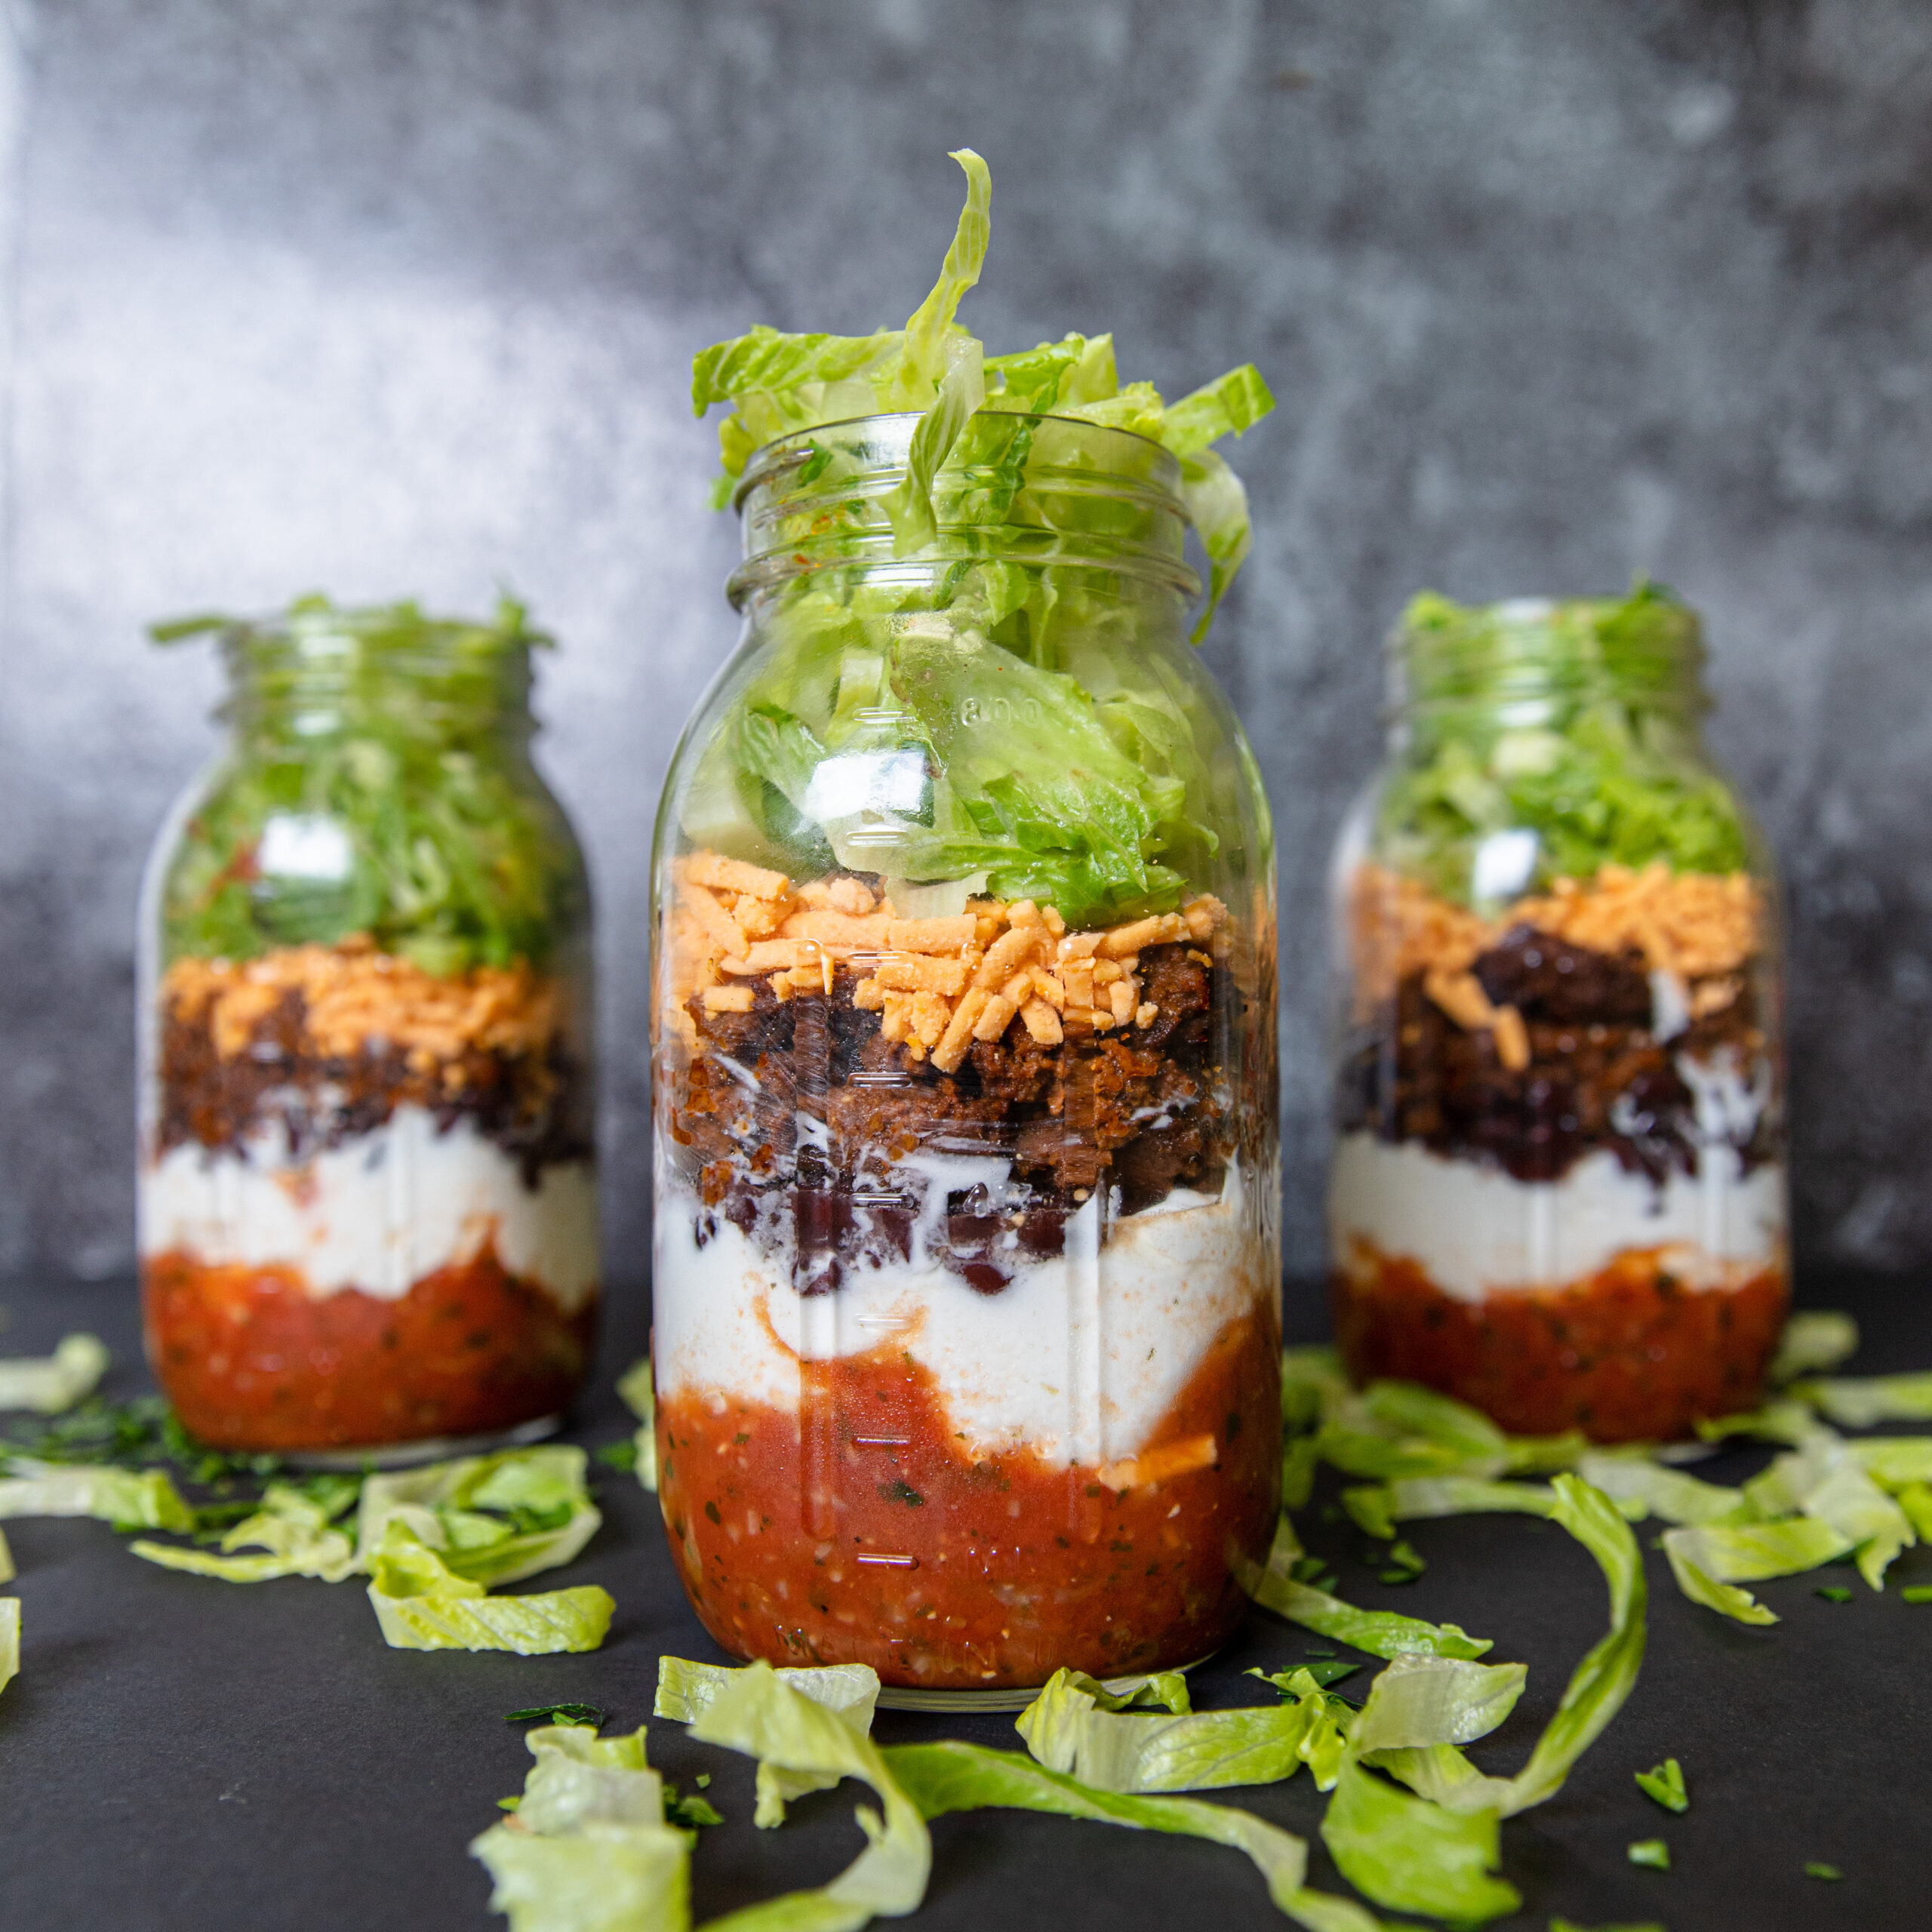 Vegan taco salad jars made with No Evil Foods El Capitan Chorizo Crumbles